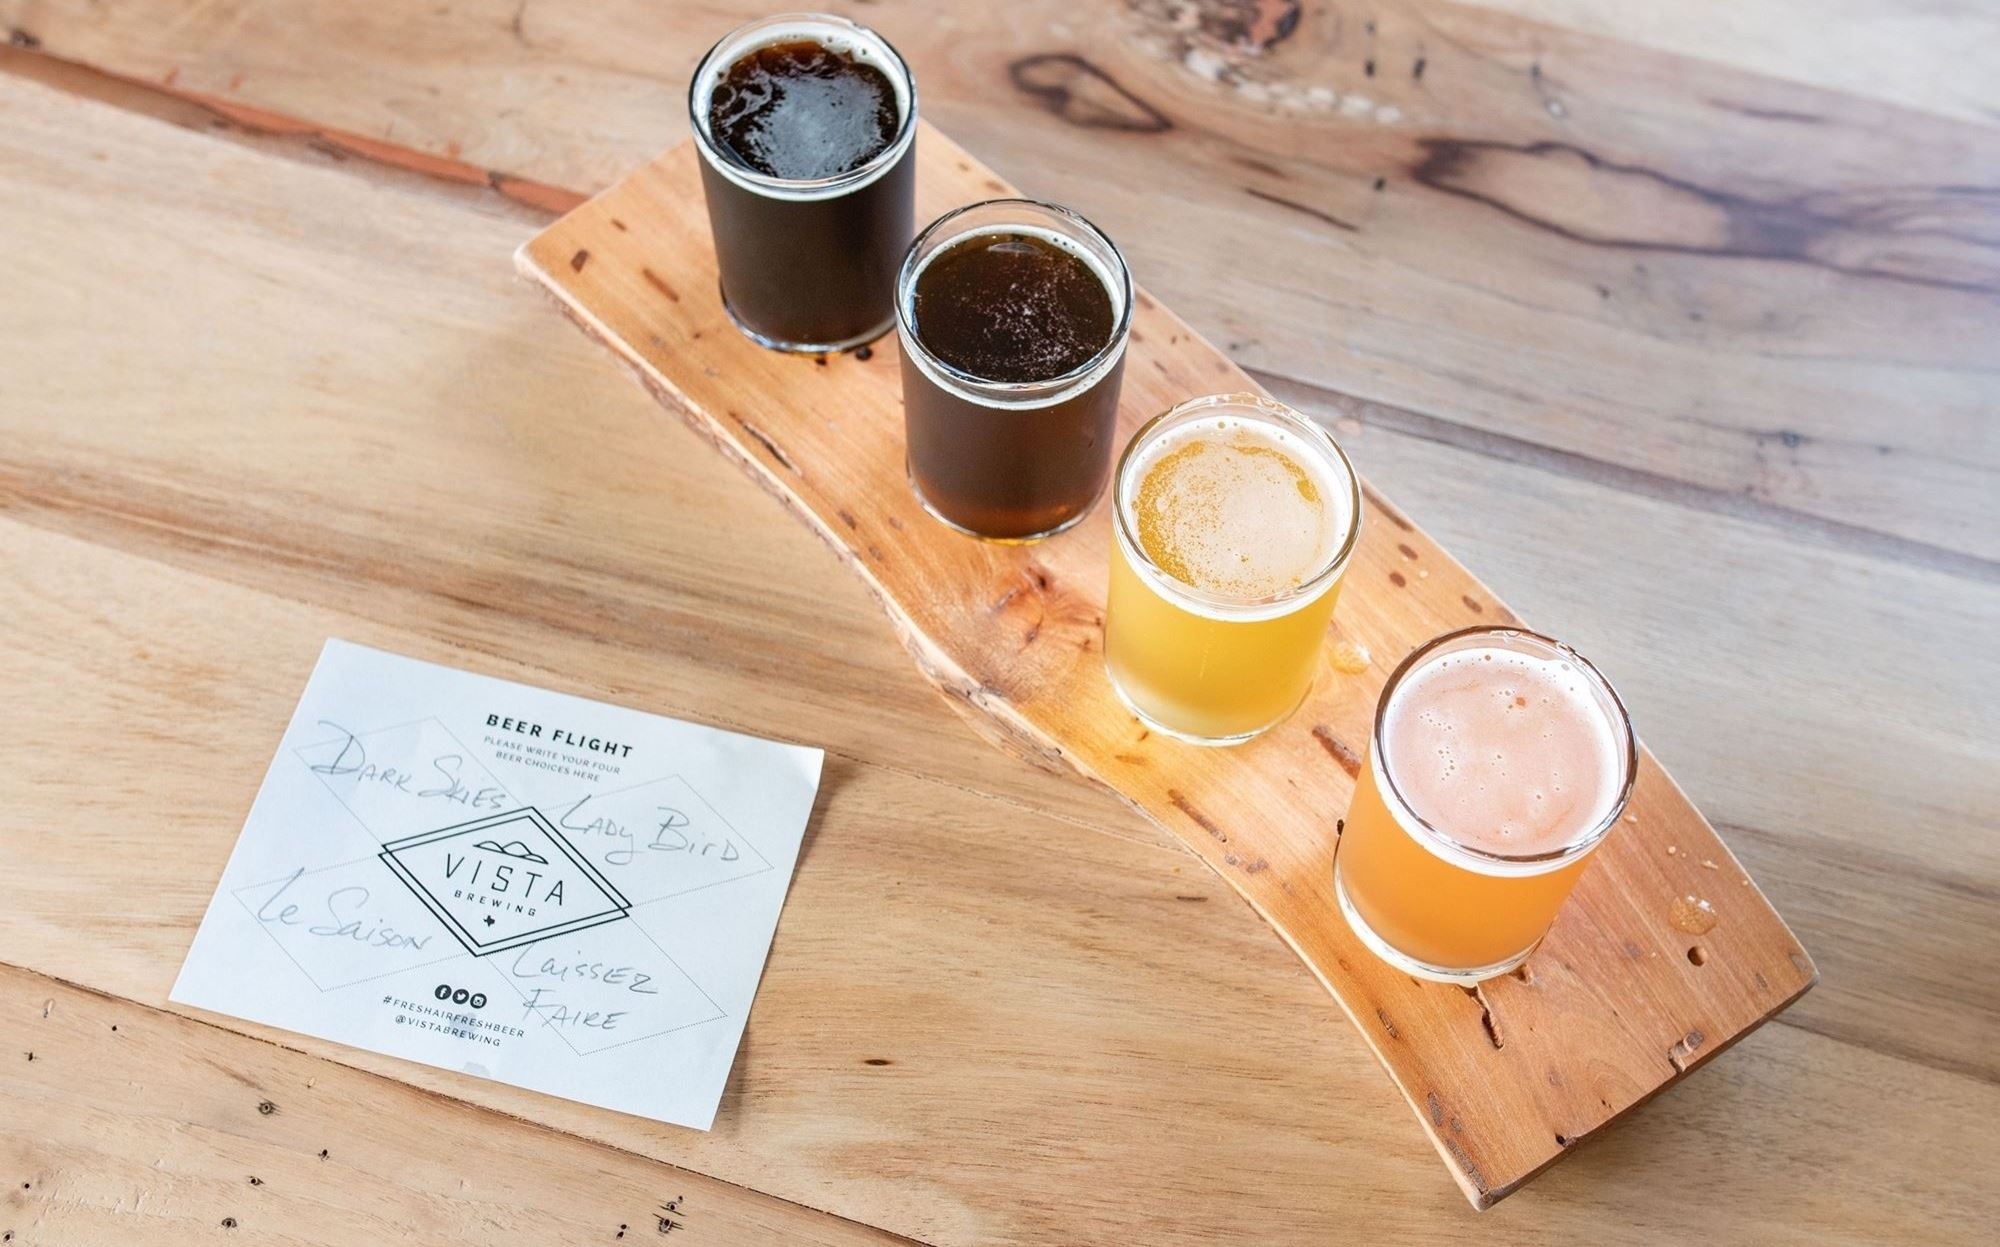 A flight of beer on a wood table